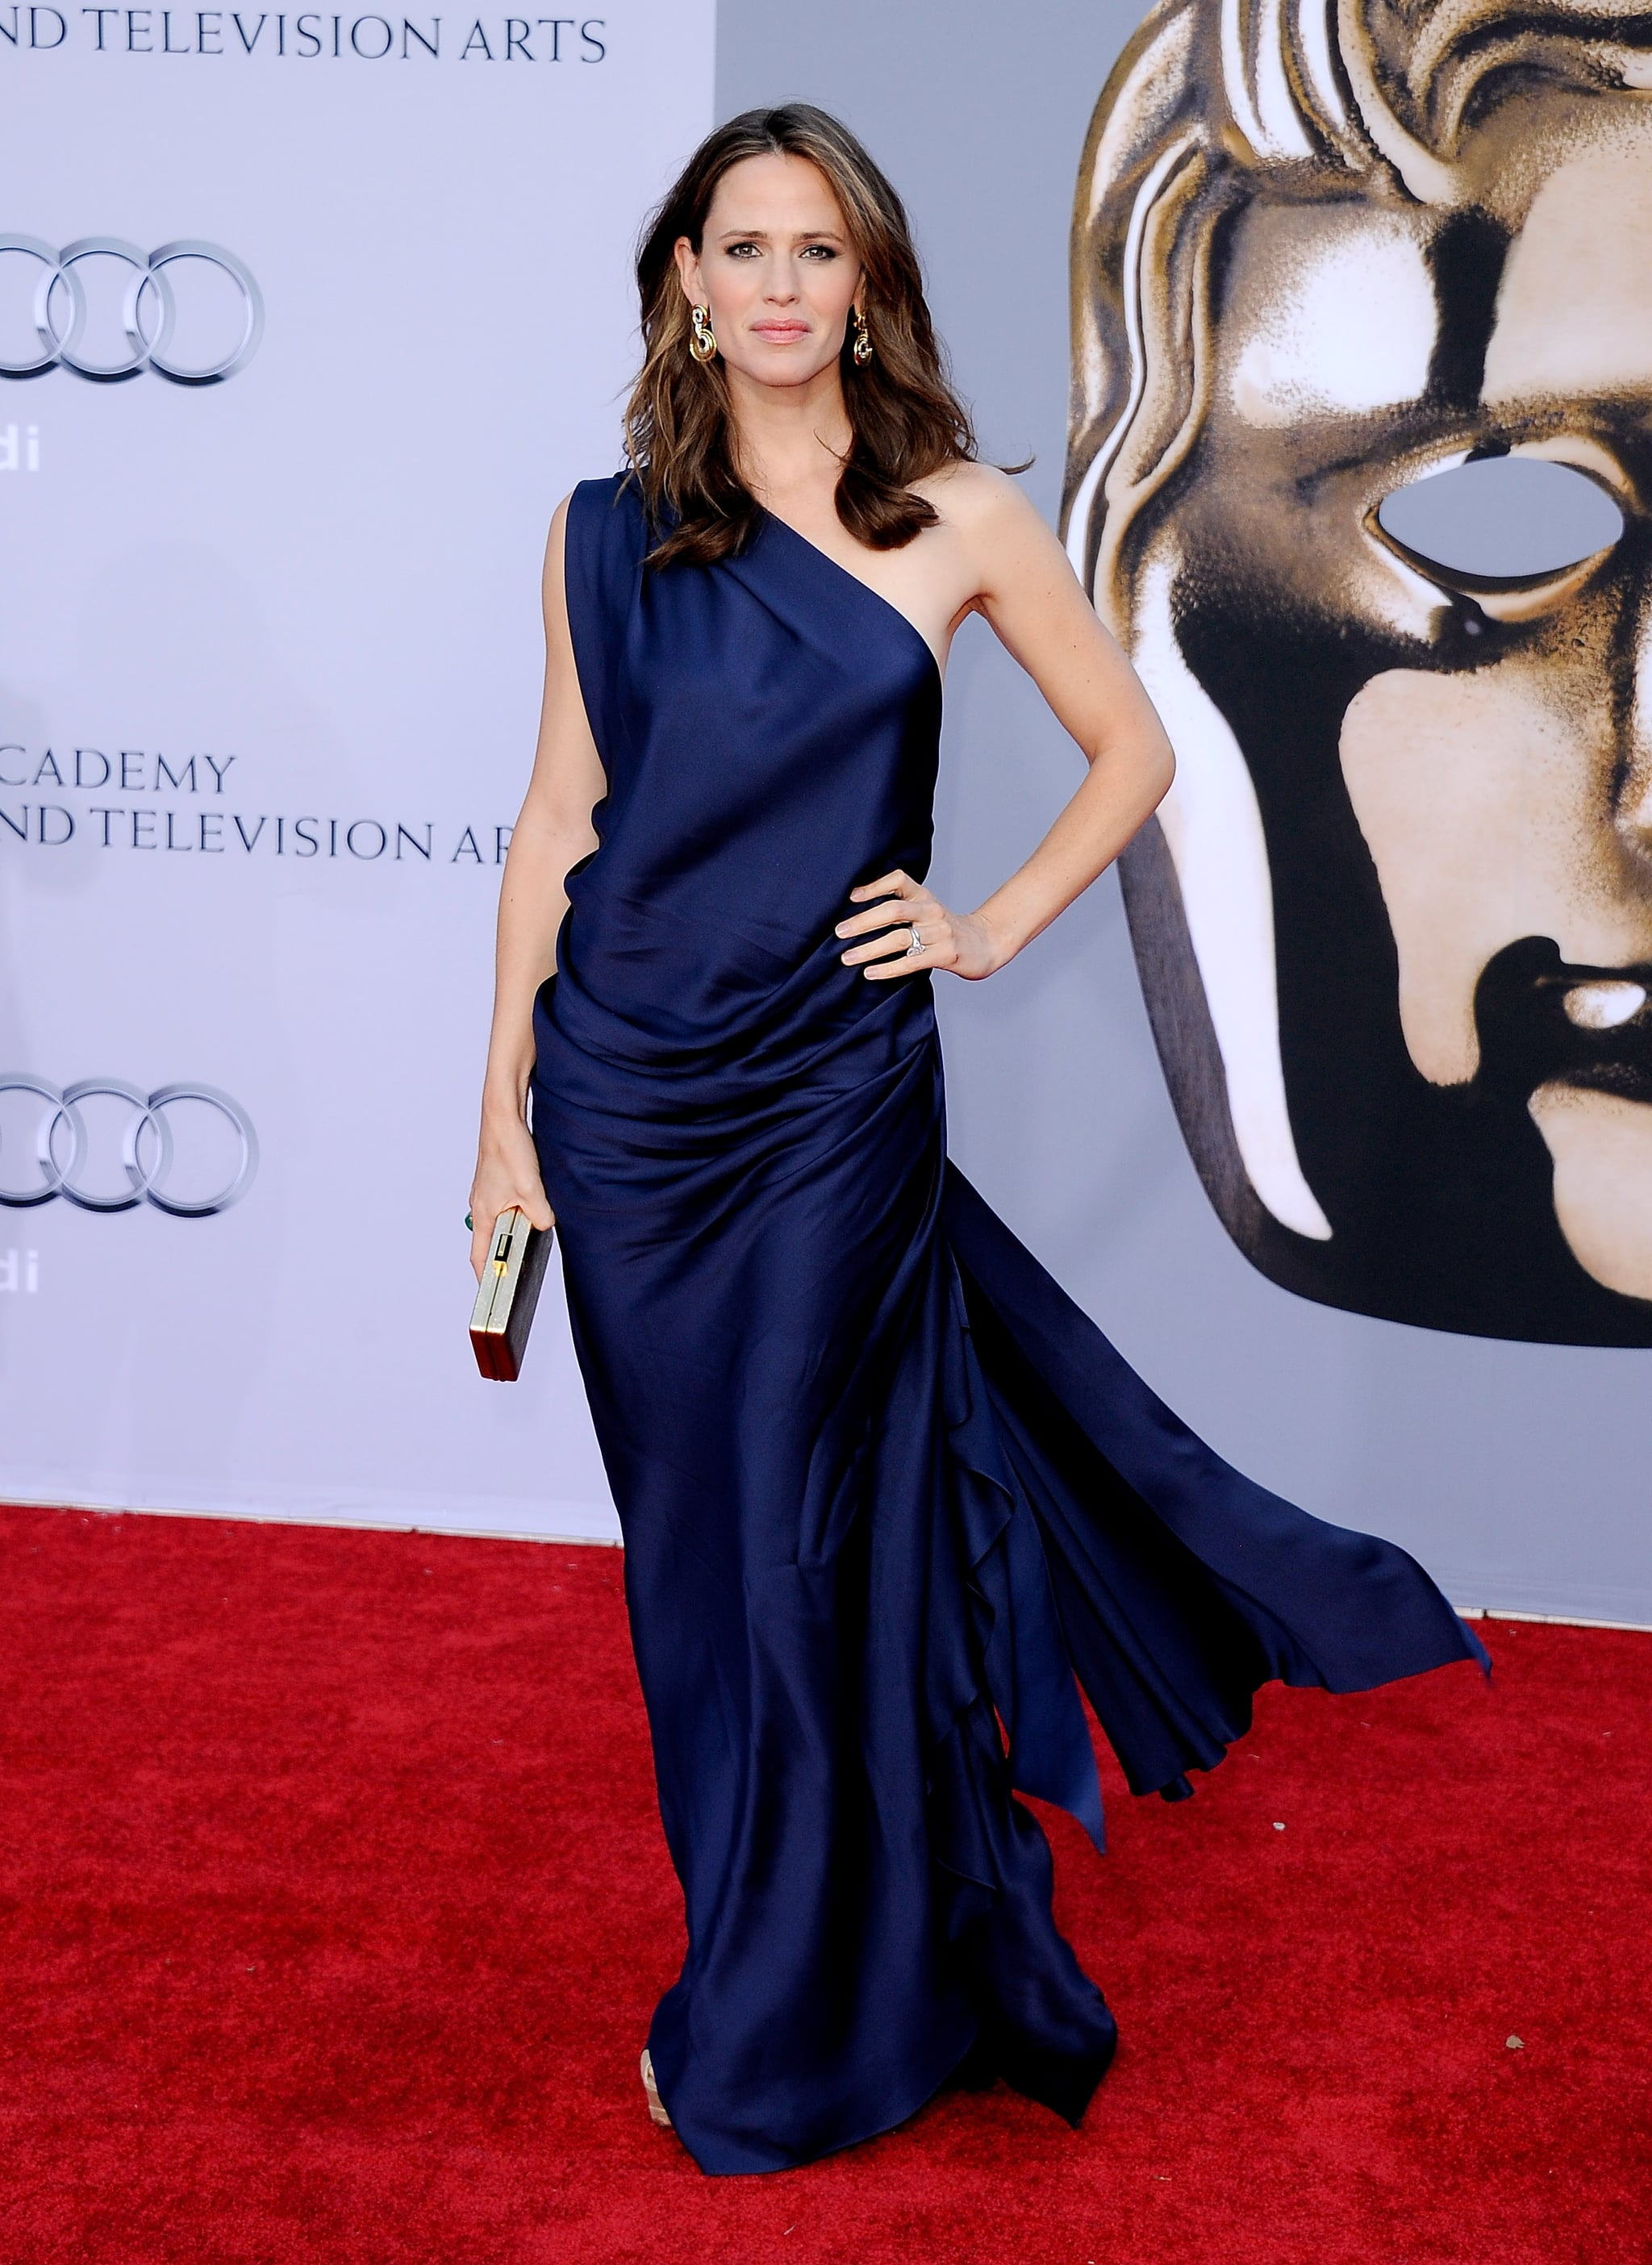 Jennifer Garner at the BAFTA Brits to Watch event in LA.